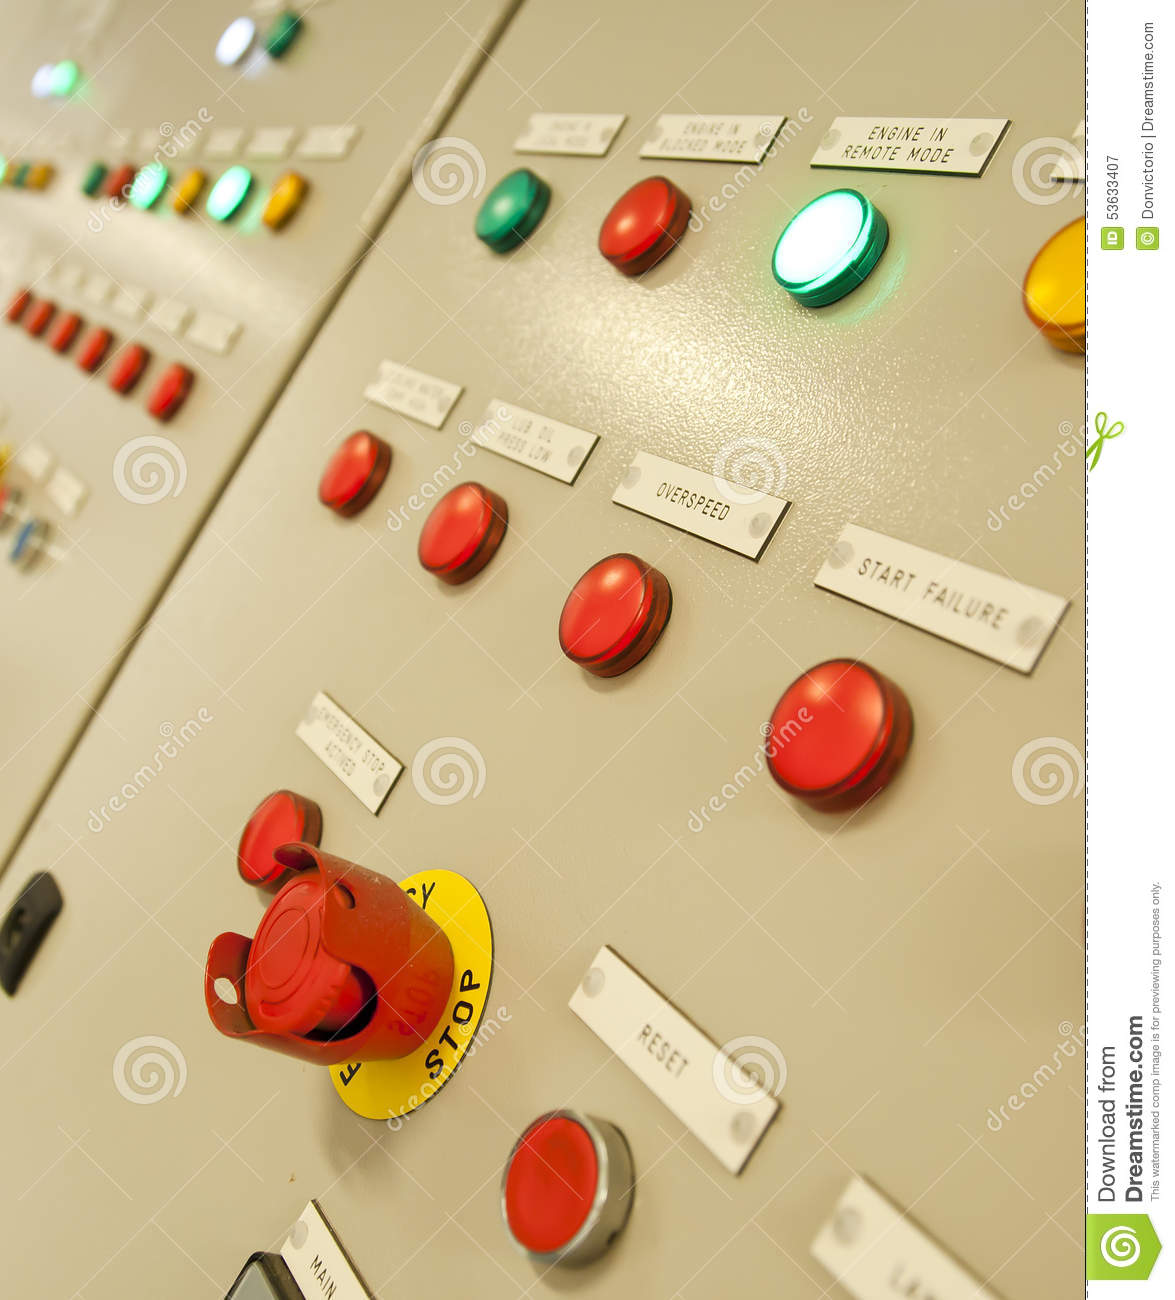 Control Room Of A Extra Large Cargo Ship. Stock Image